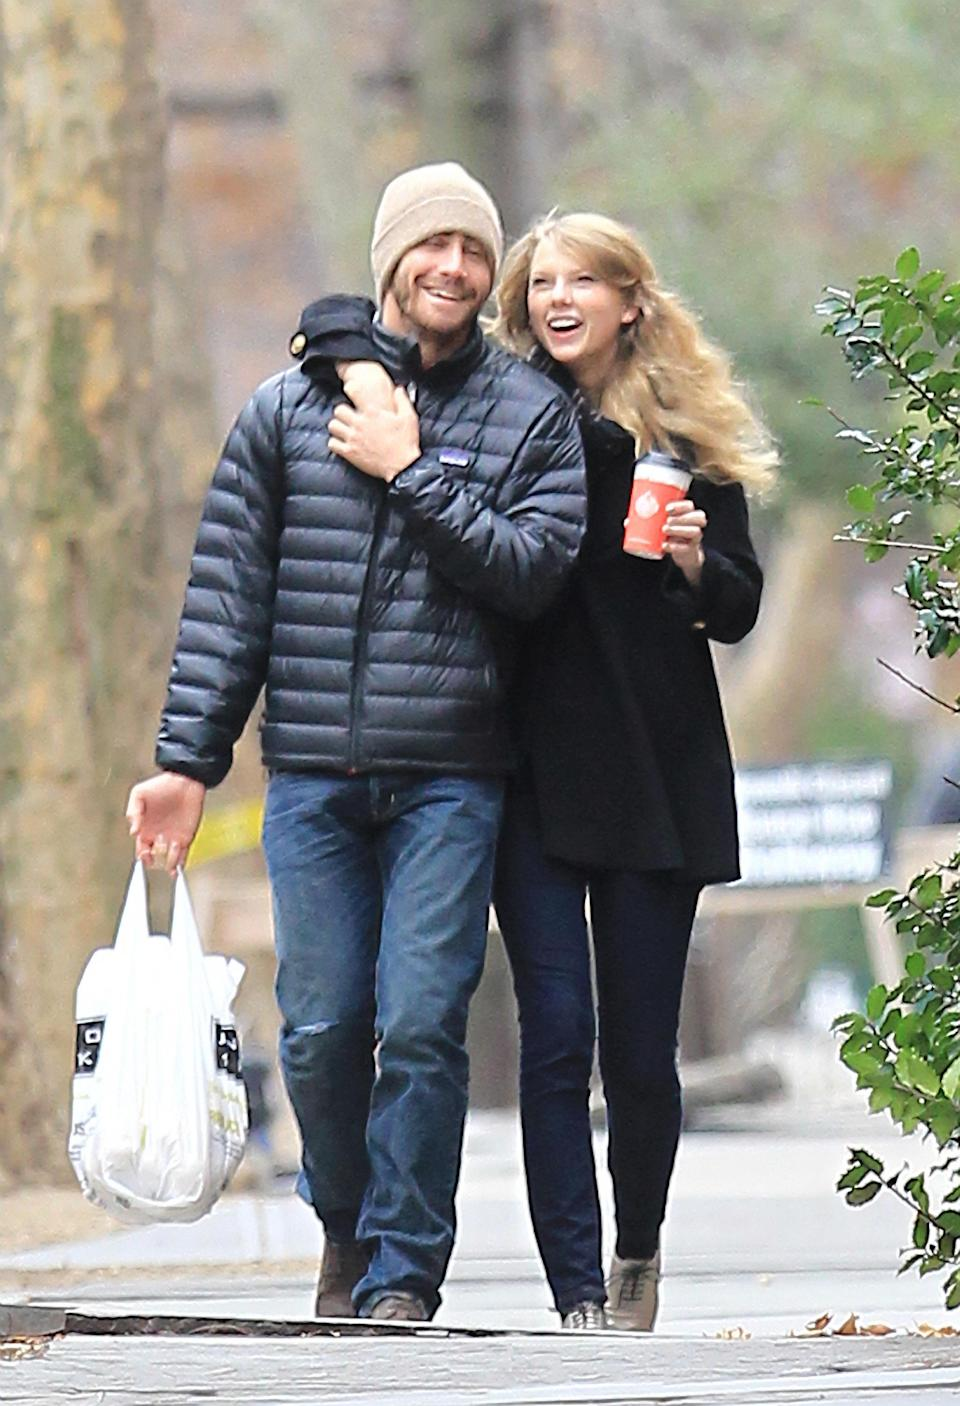 Jake Gyllenhall and Taylor Swift. (Photo: Instar Images)